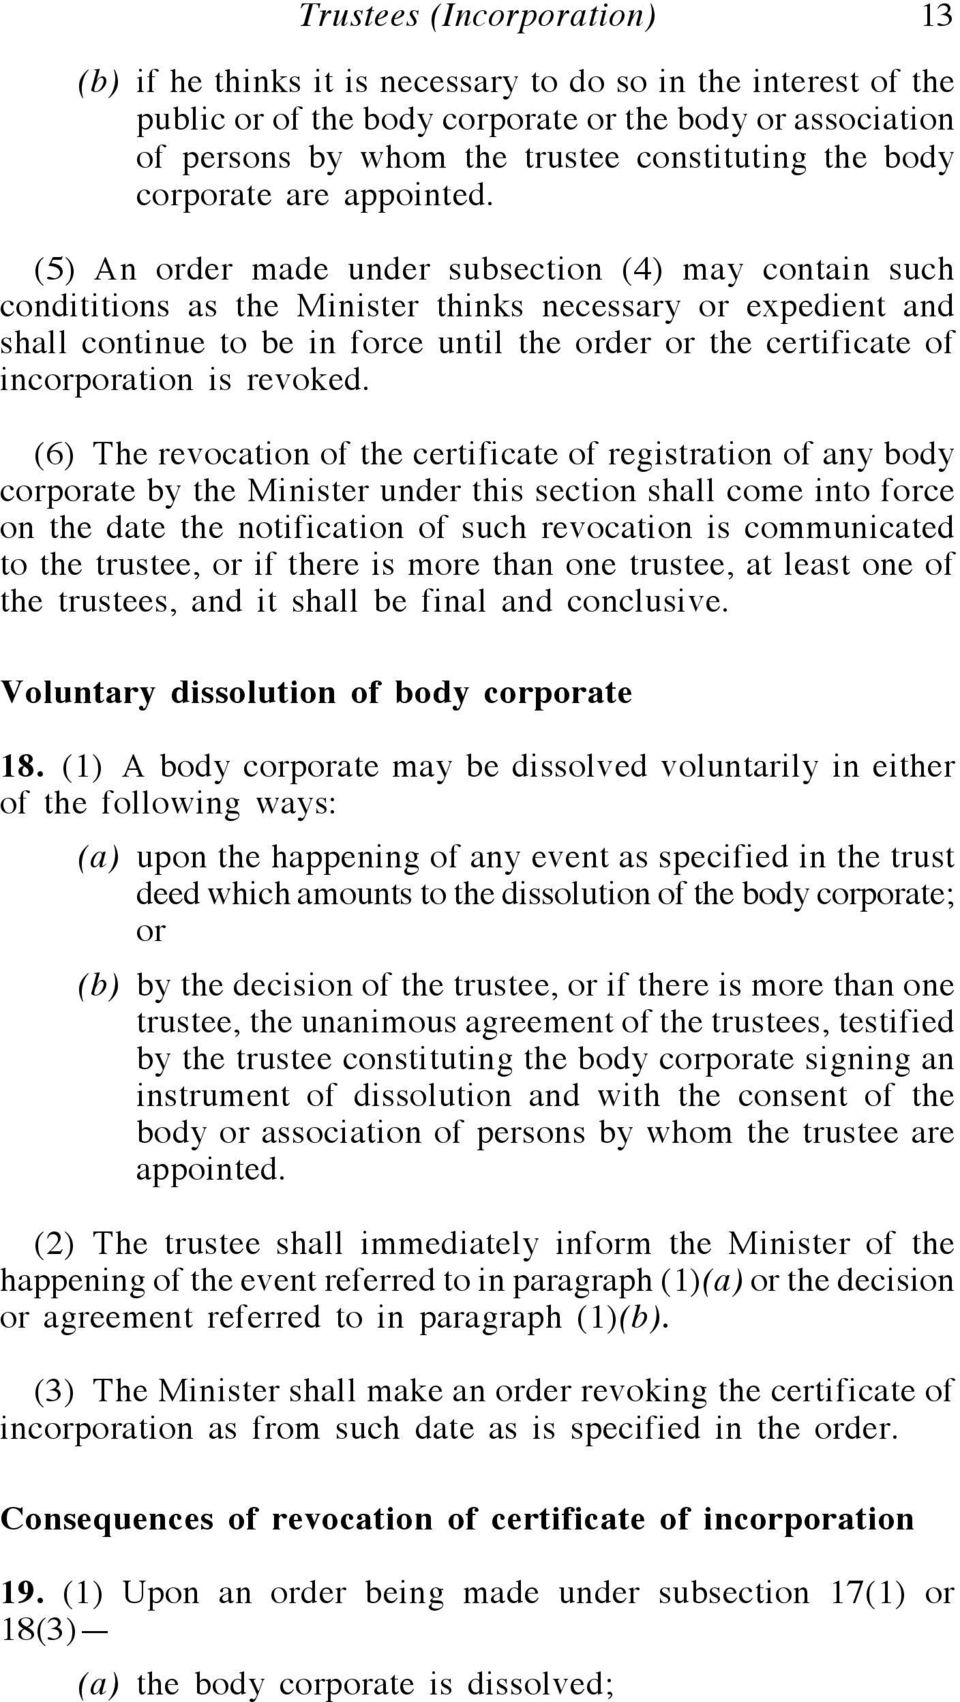 (5) An order made under subsection (4) may contain such condititions as the Minister thinks necessary or expedient and shall continue to be in force until the order or the certificate of